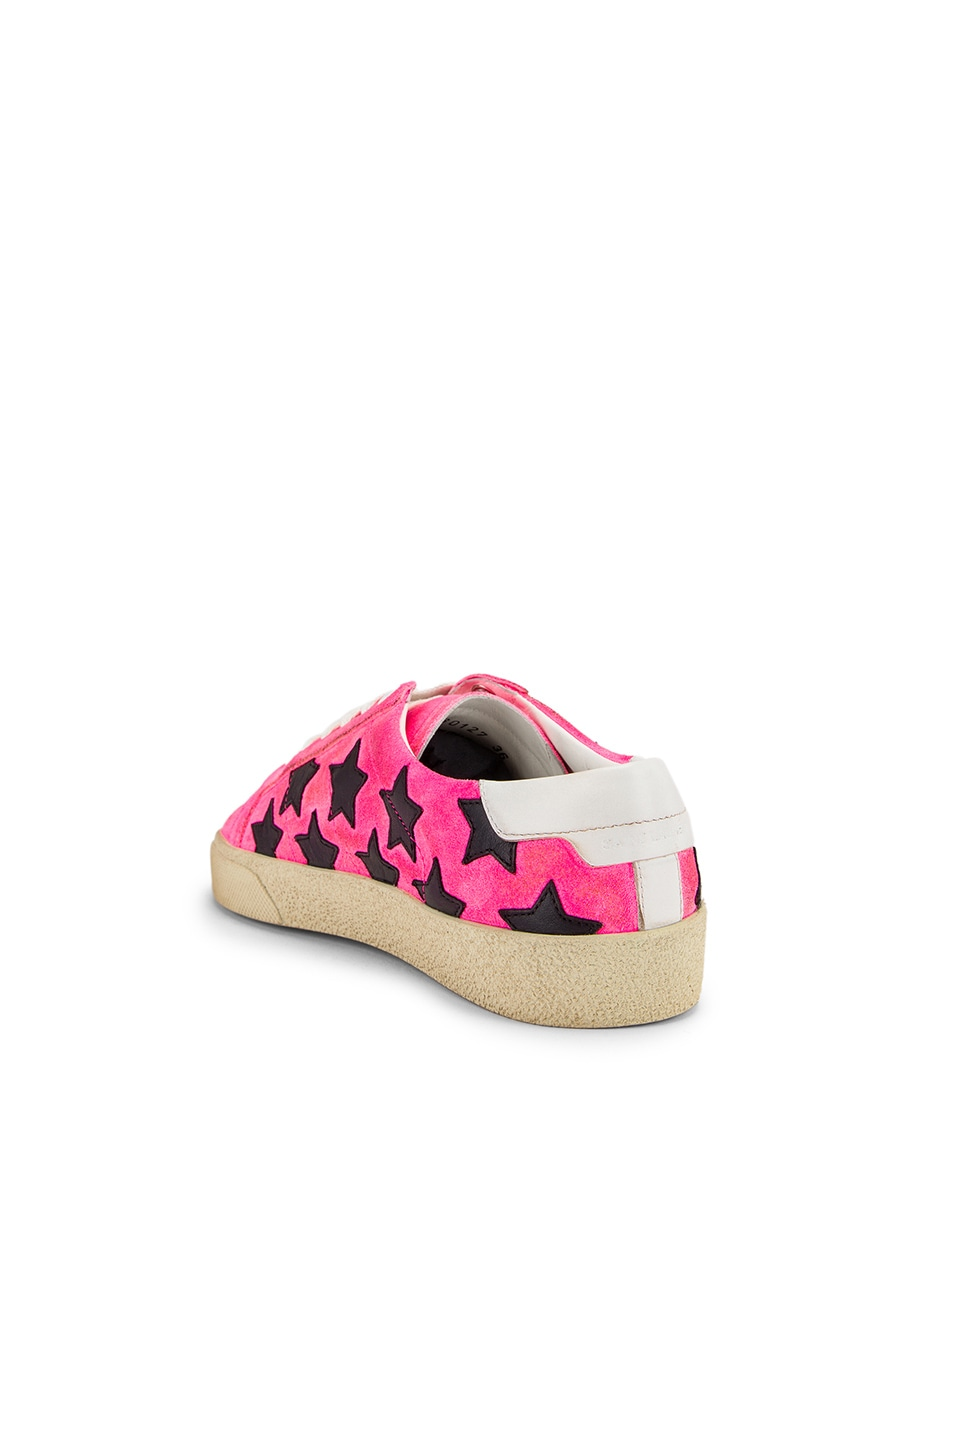 Image 3 of Saint Laurent Star Low Top Sneakers in Pink & Black